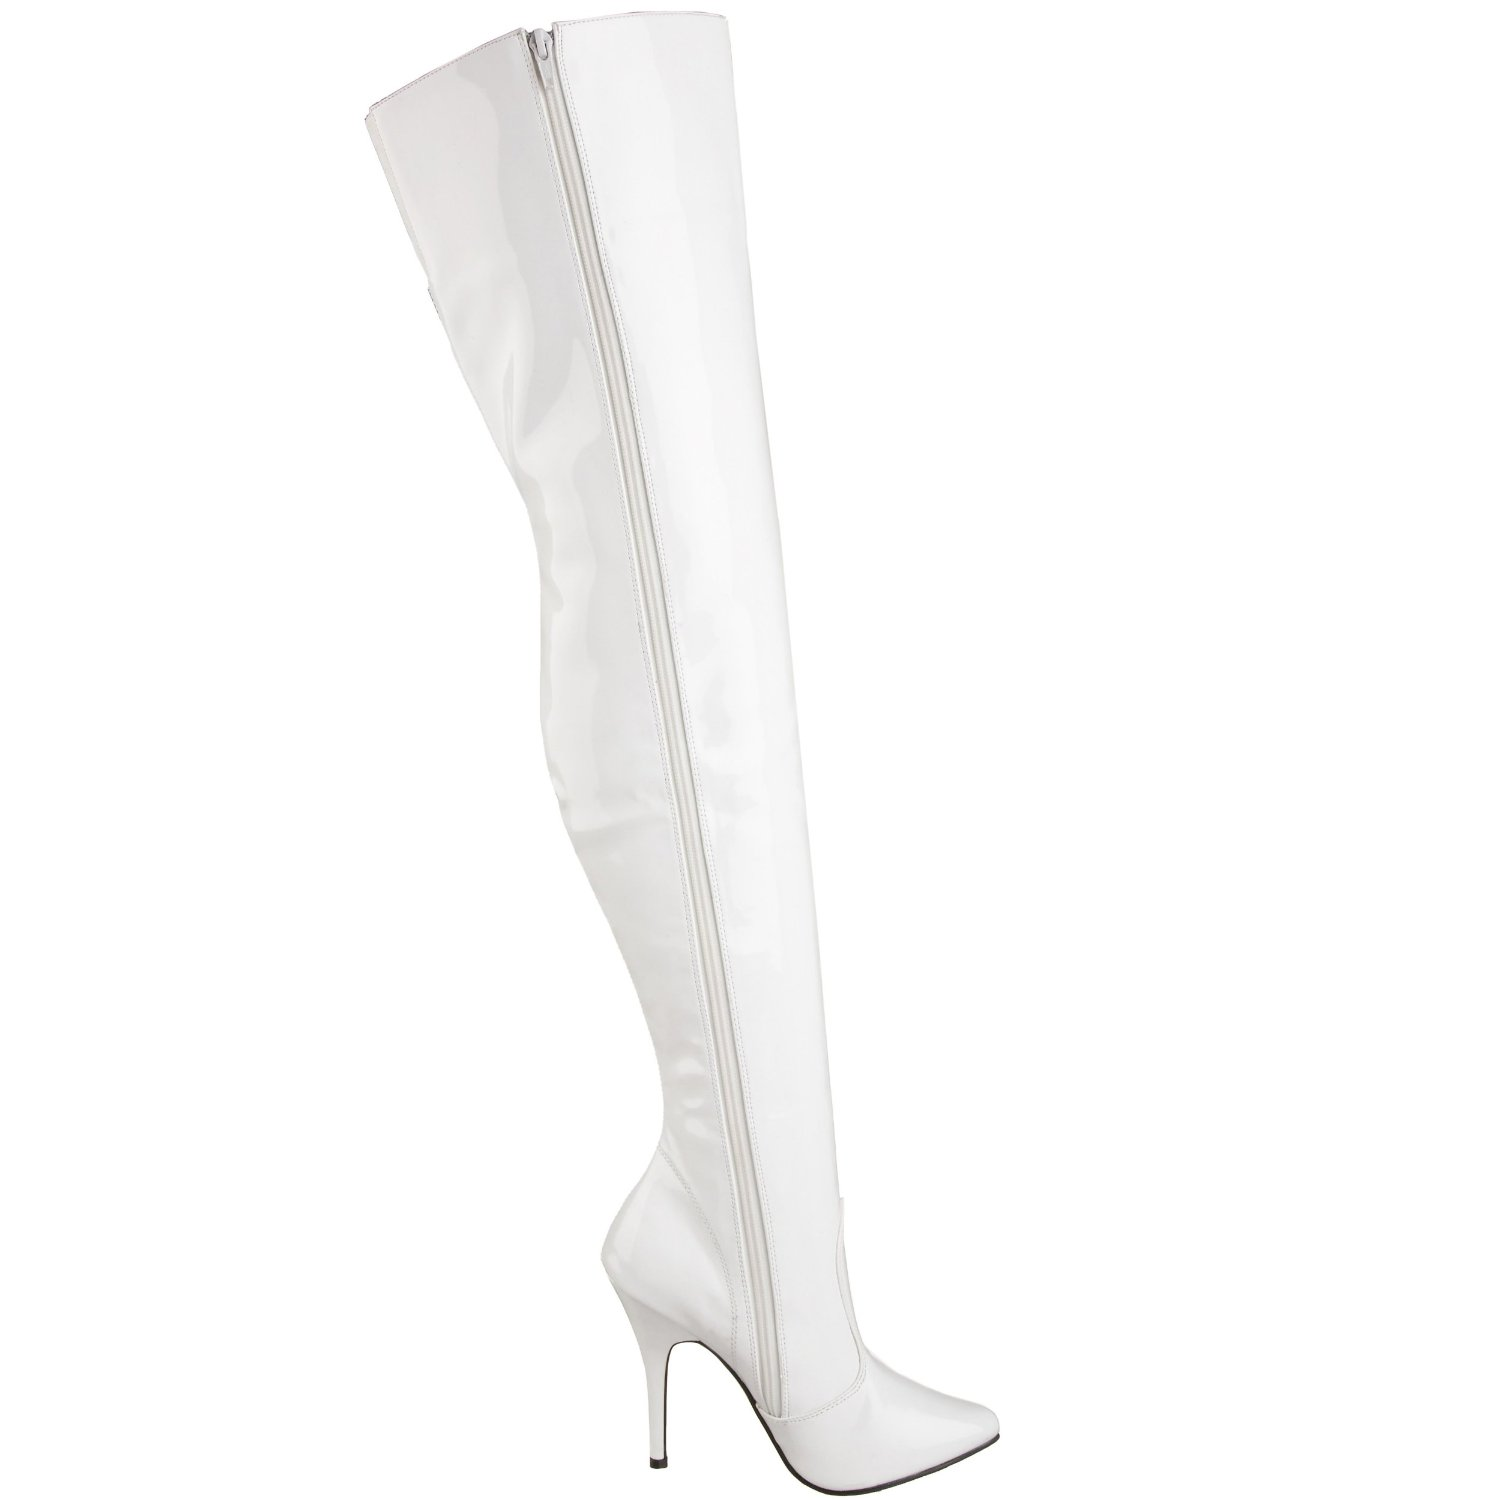 White Leather Thigh High Boots - Yu Boots